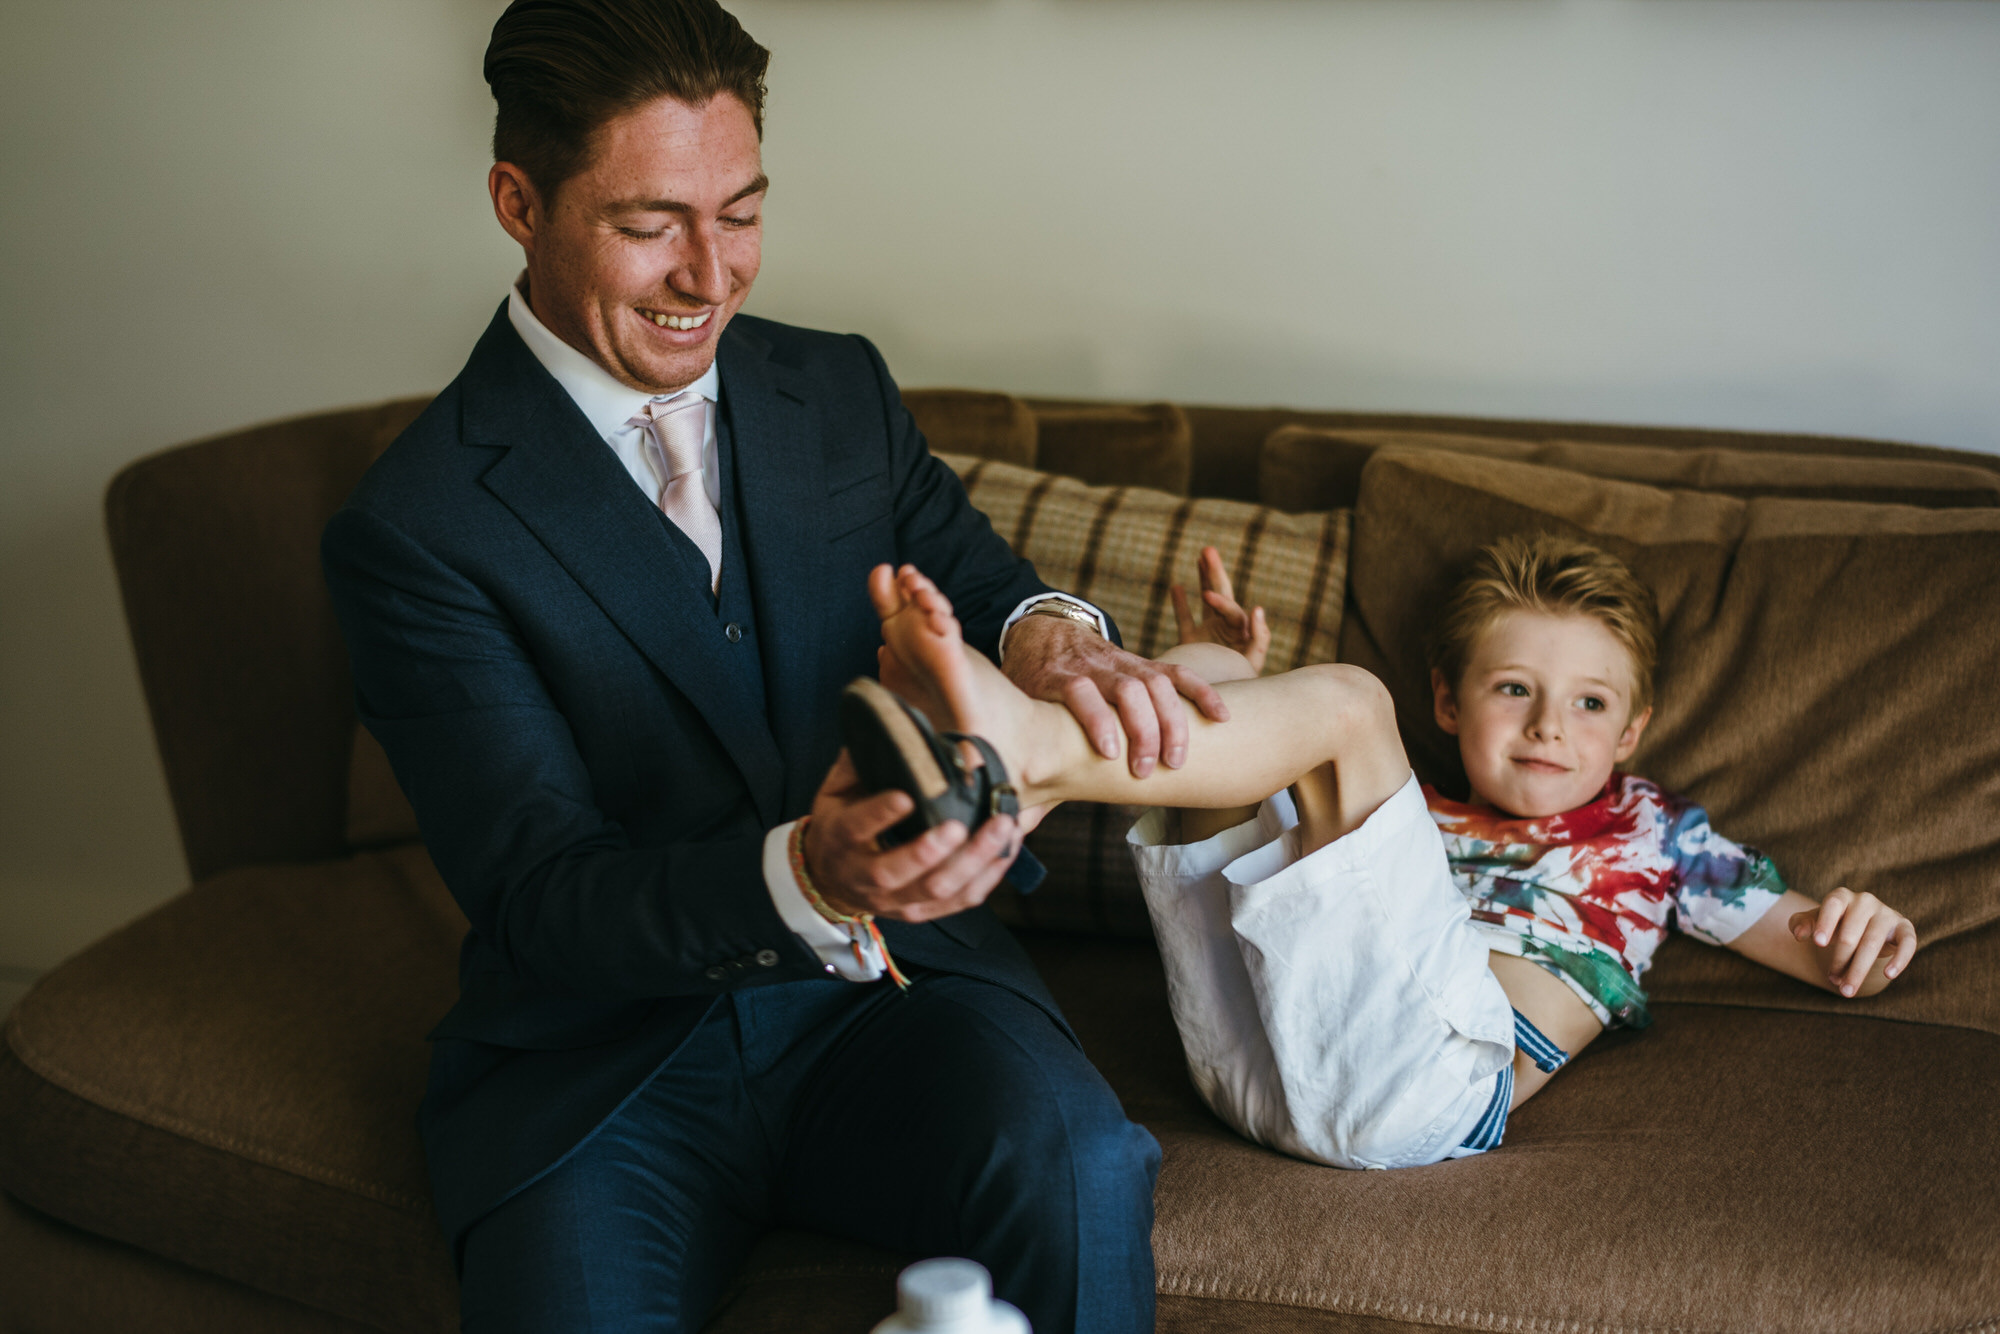 Groom gets son changed